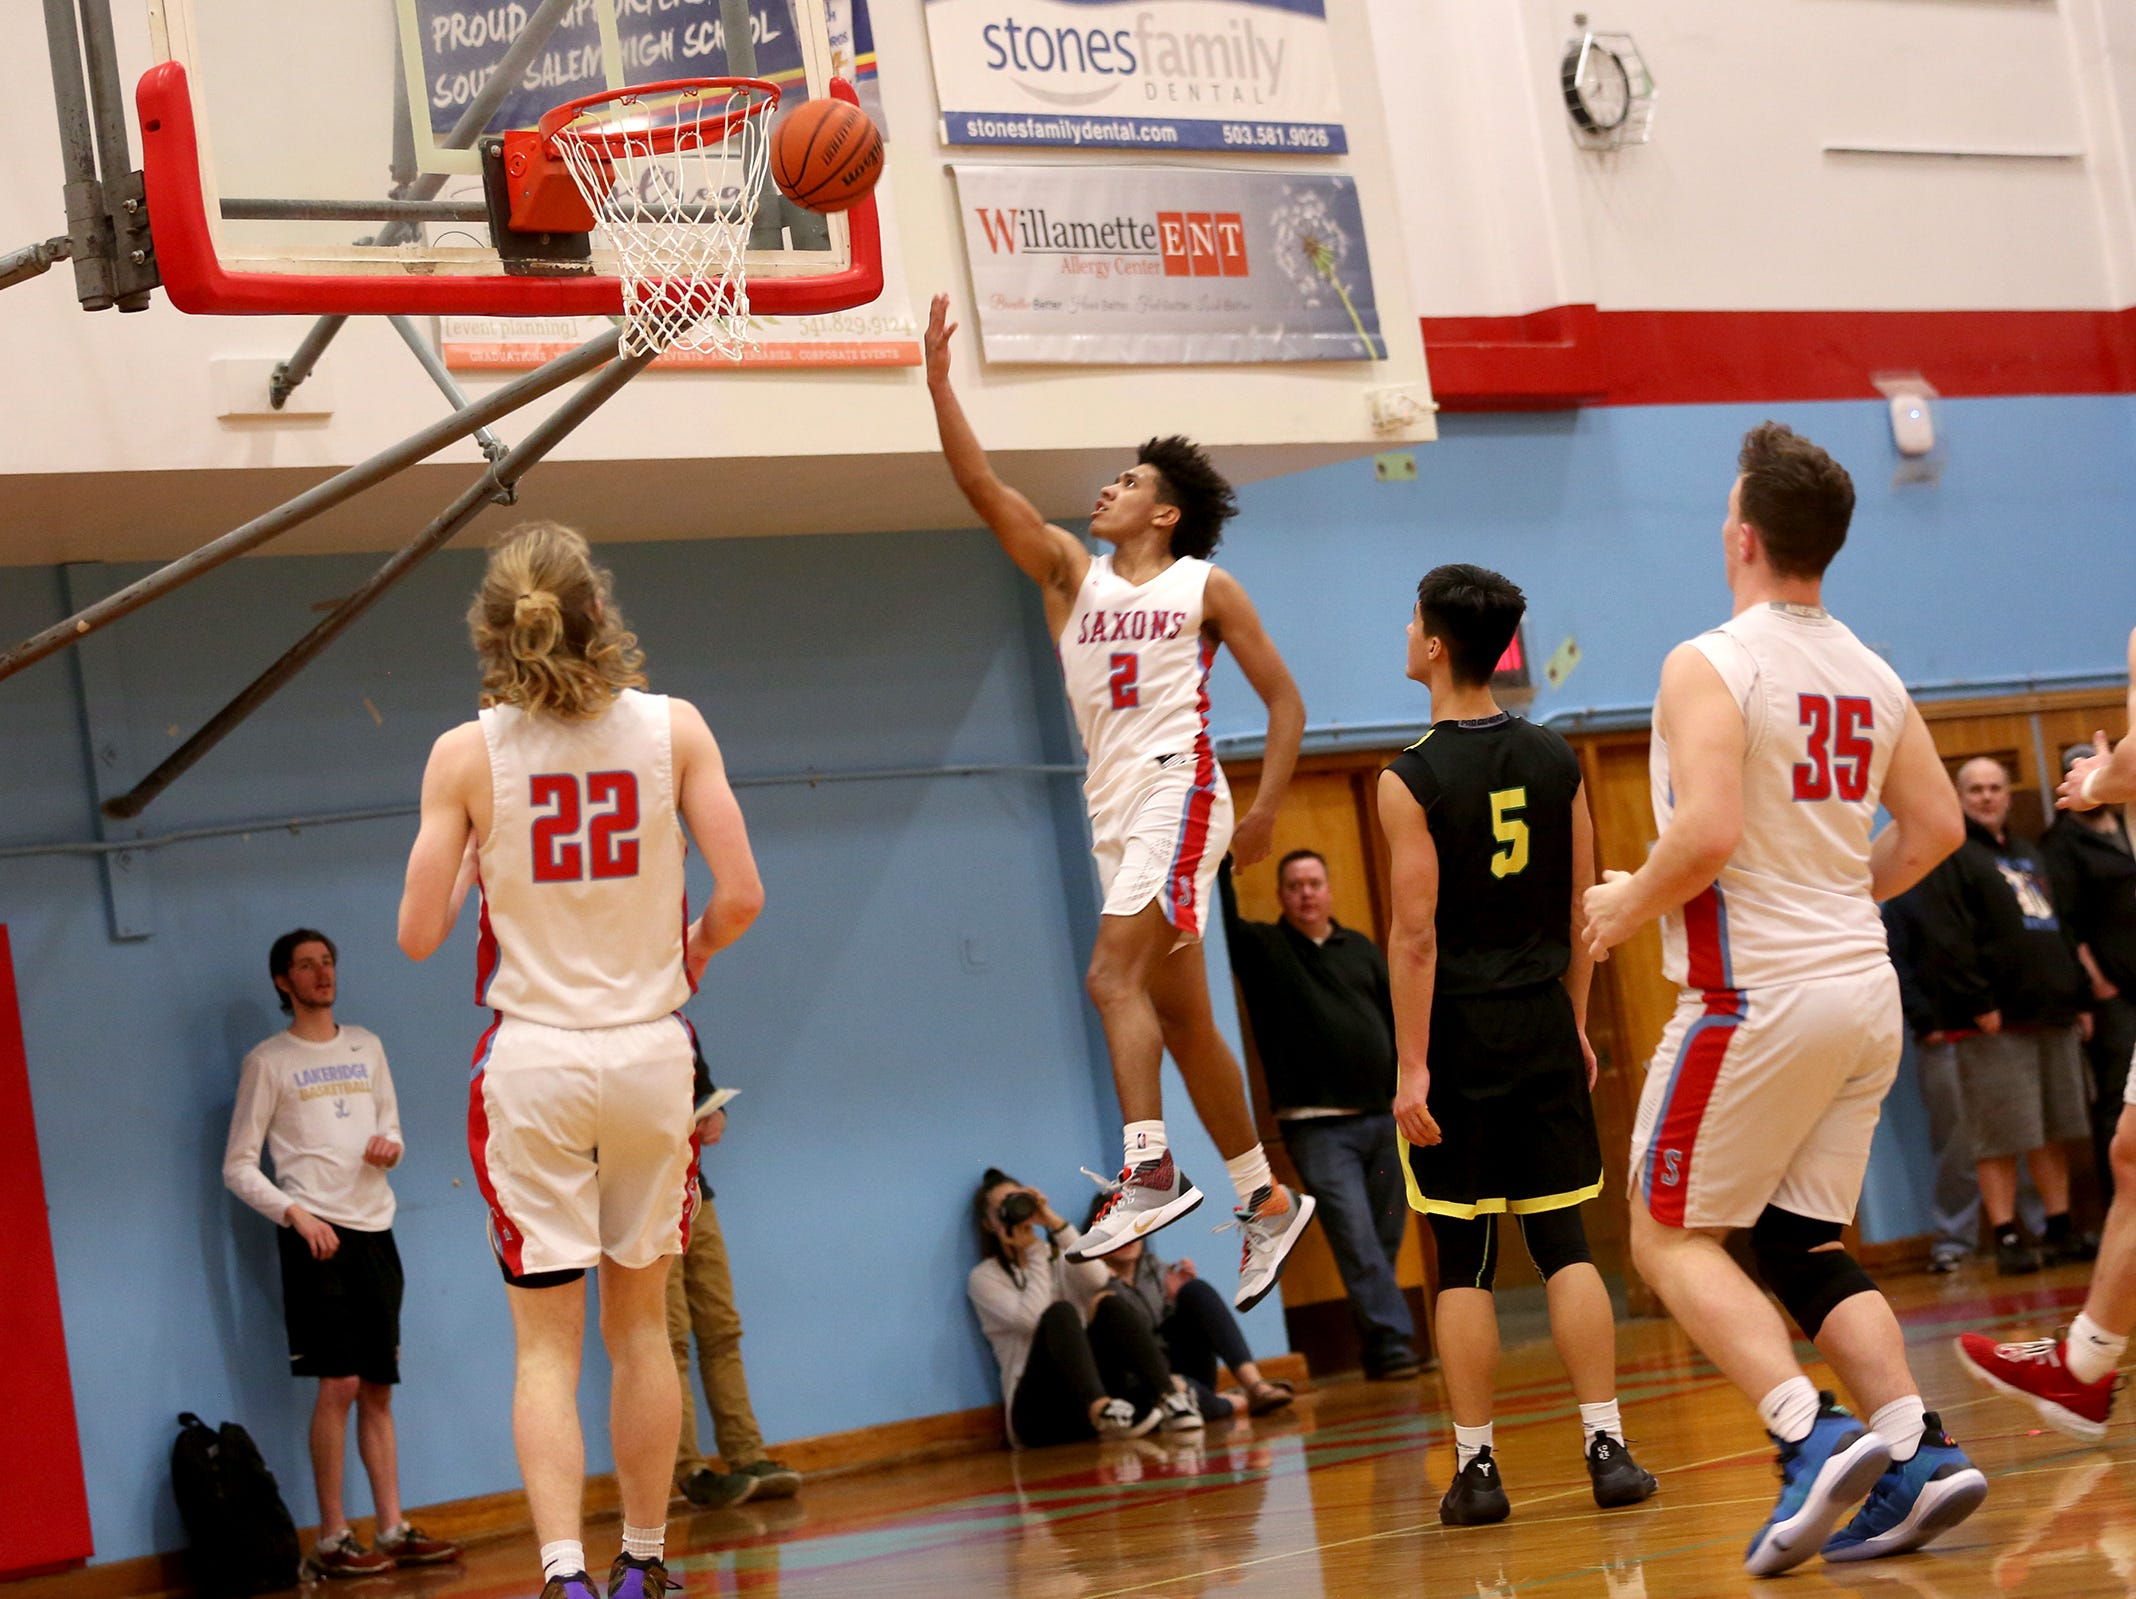 South Salem's Jaden Nielsen-Skinner 2 goes up for a shot during the South Salem vs. West Linn boys basketball OSAA playoff game at South Salem High School on Friday, March 1, 2019.